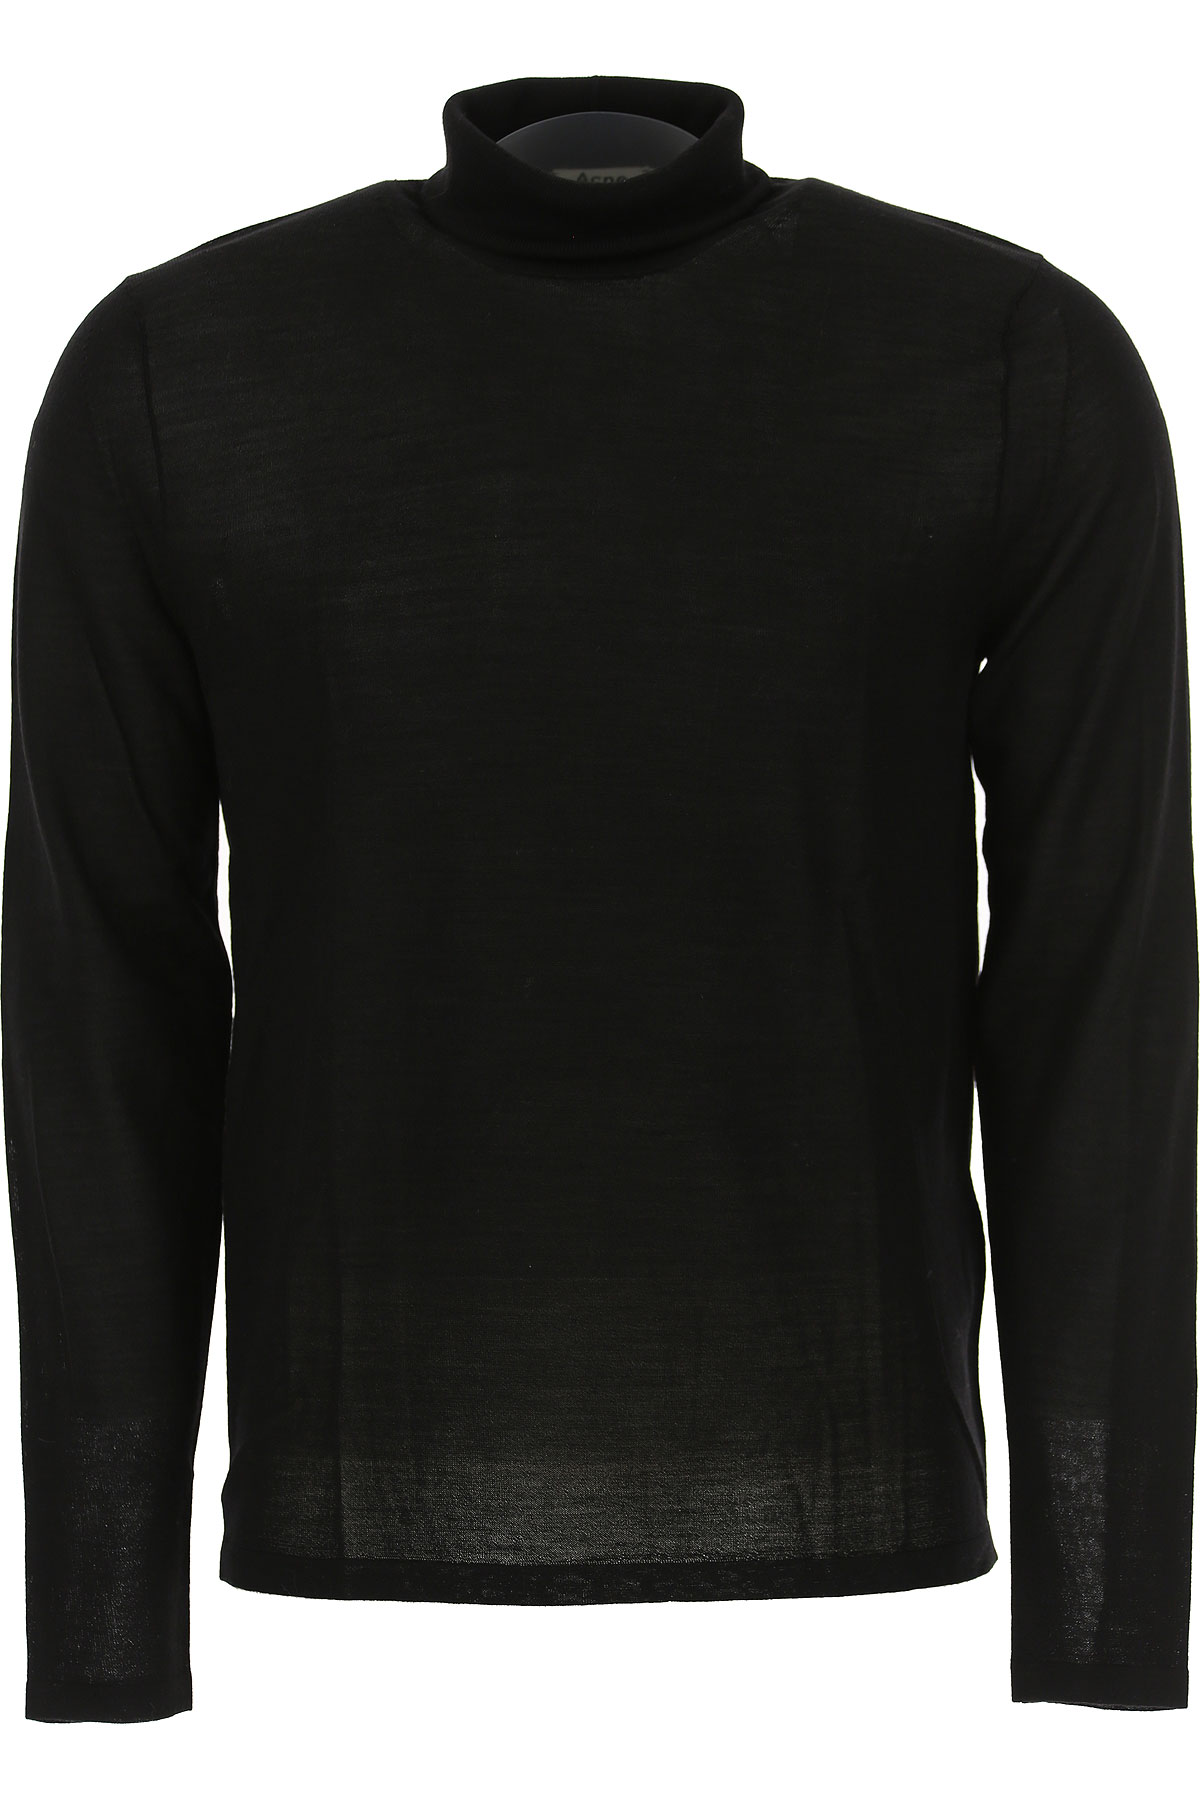 Image of Acne Studios Sweater for Men Jumper, Black, Merinos Wool, 2017, L M S XL